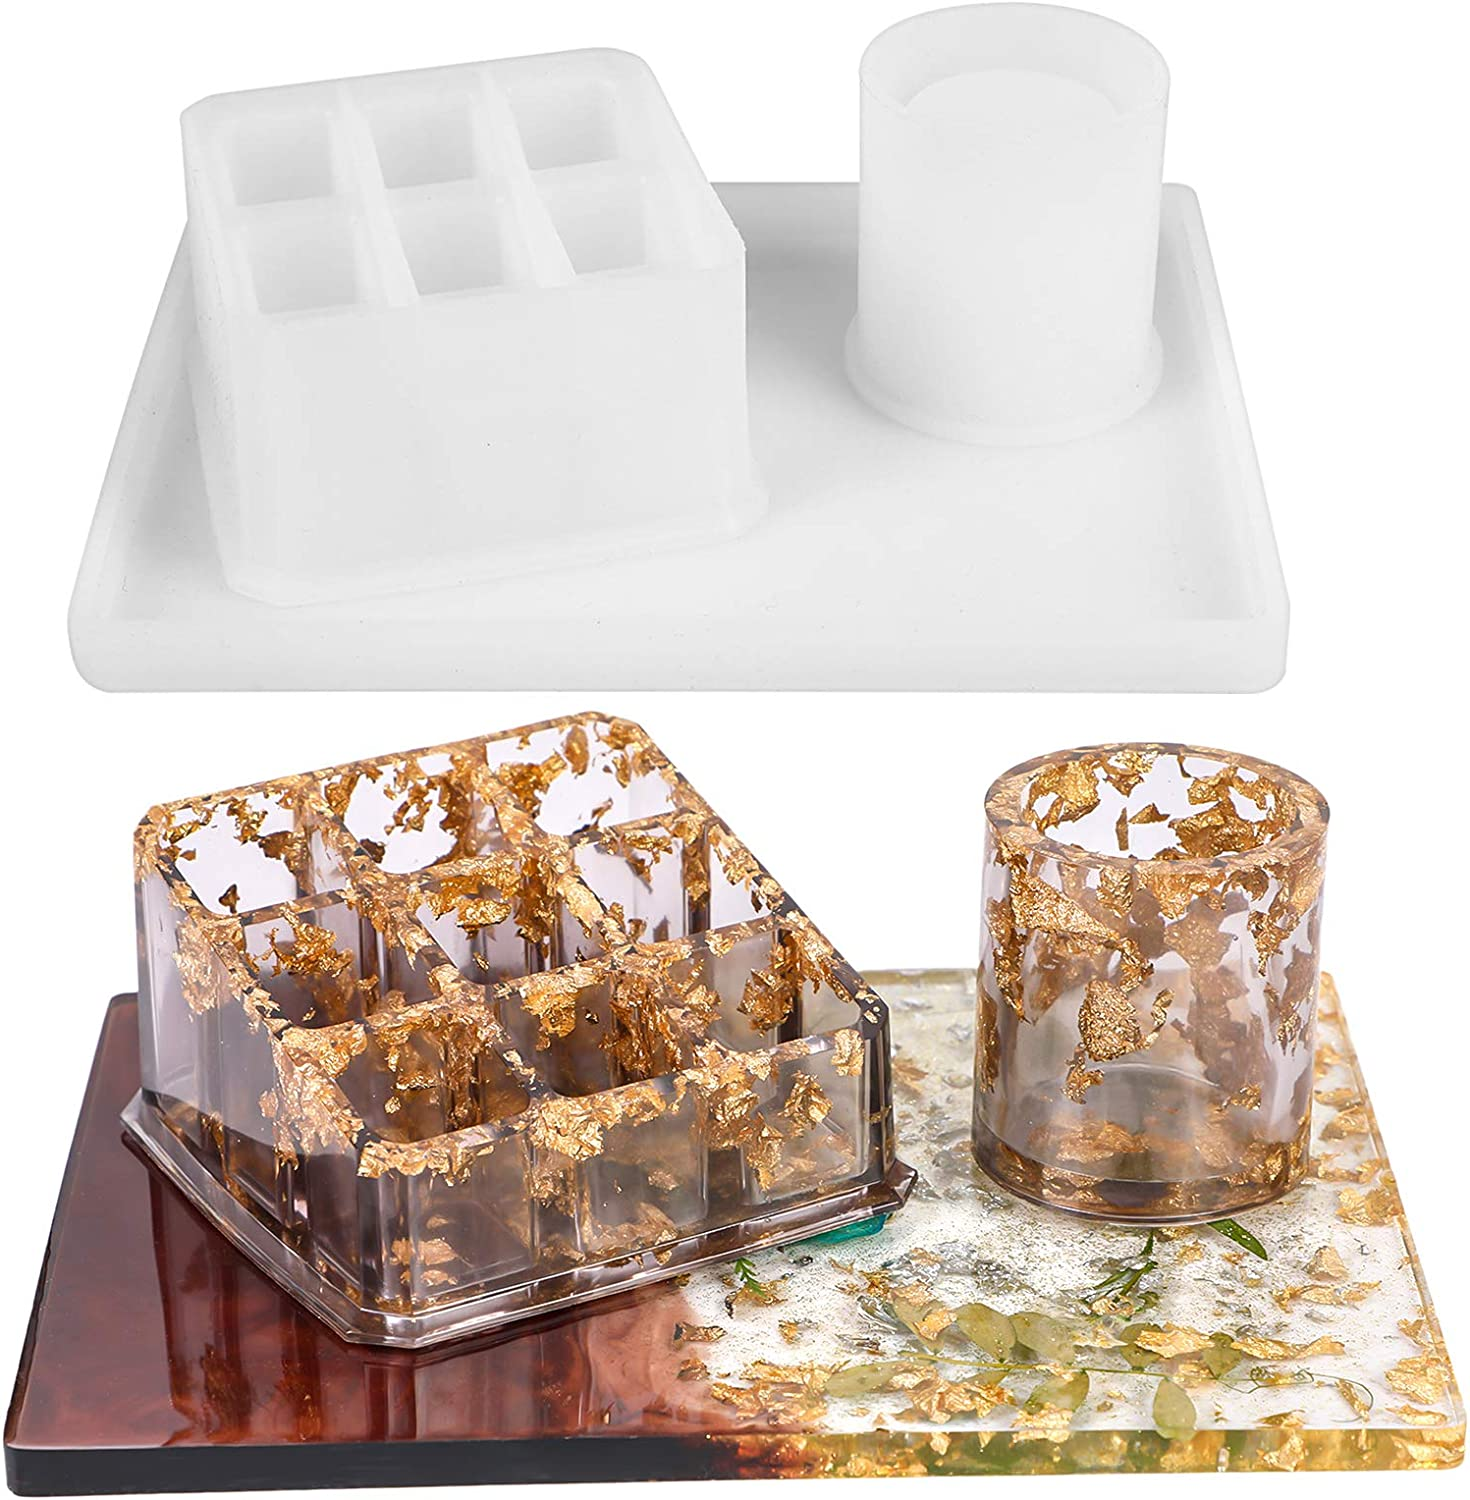 Resin Lipstick Storage Case Silicone Box Molds Hand Made Tools Casting Mould